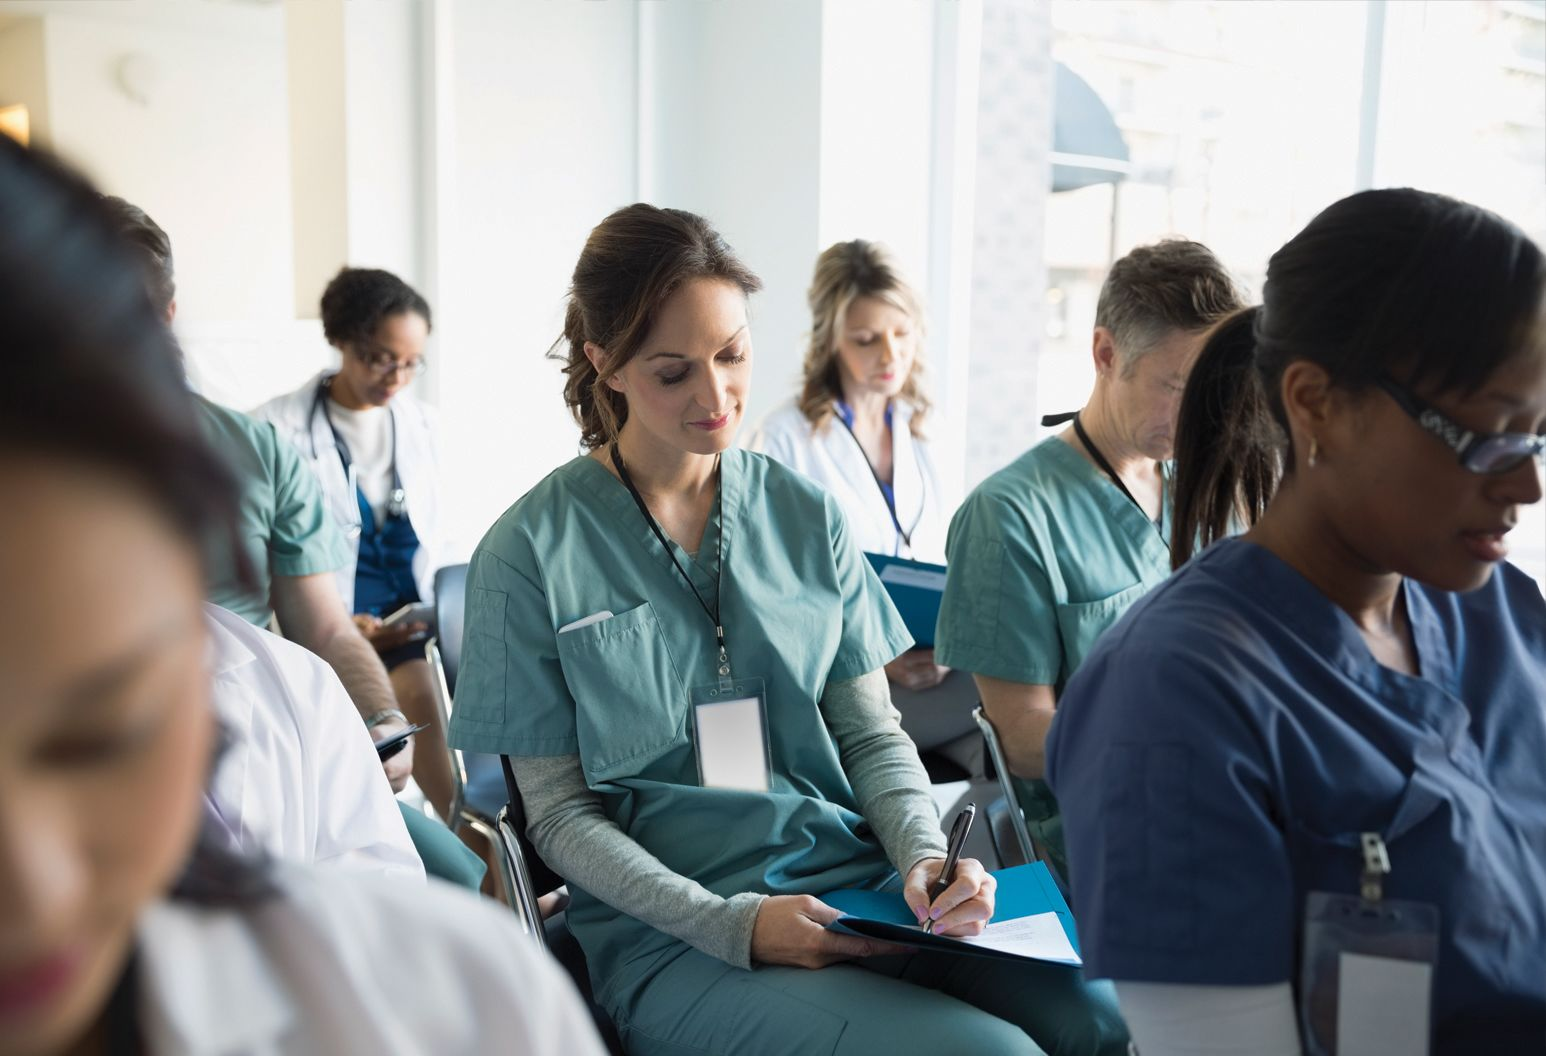 Young woman in green scrubs sits among other young professionals taking notes.